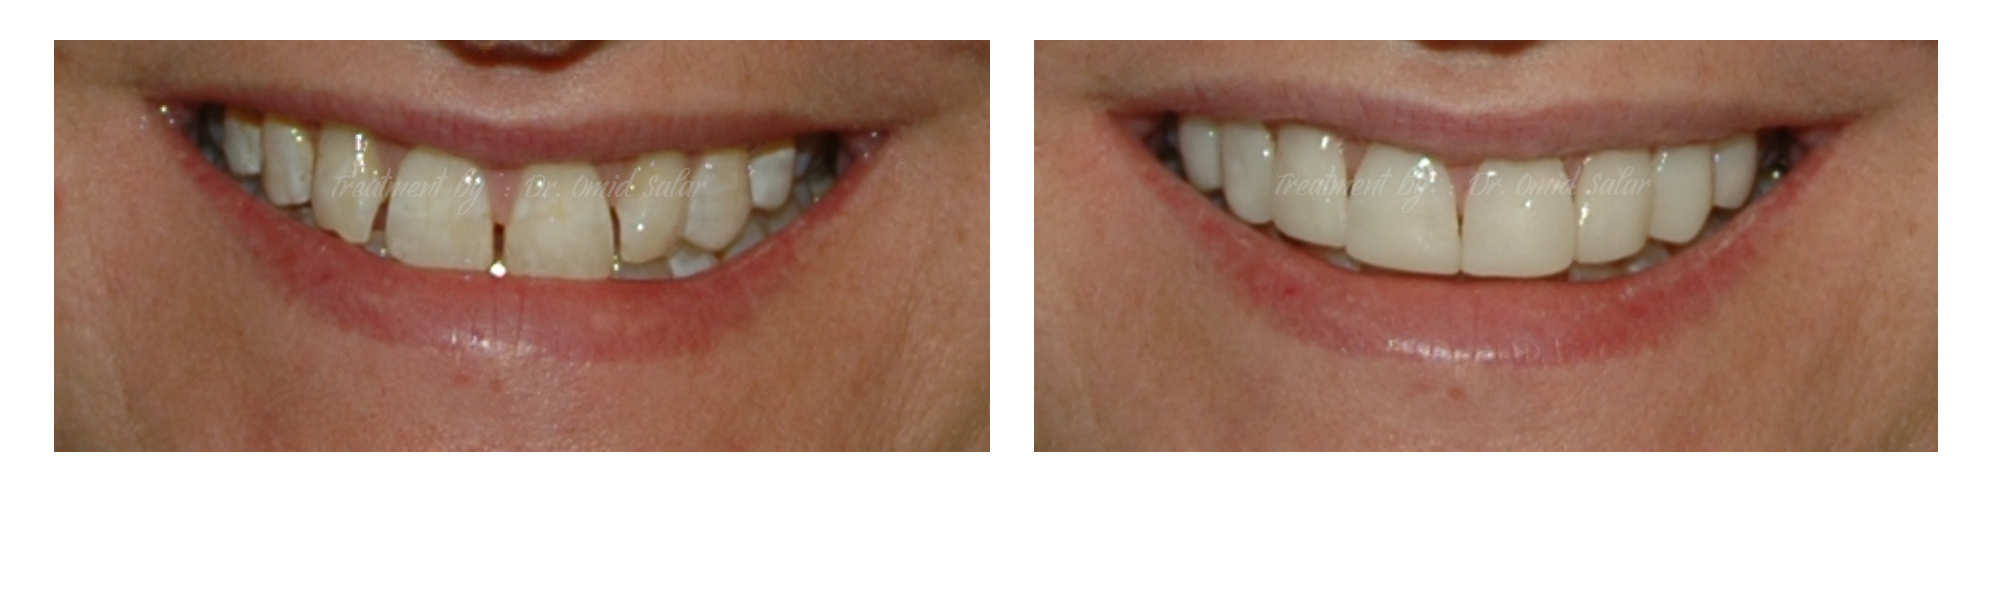 Composite Veneers Smile - closing gaps between teeth